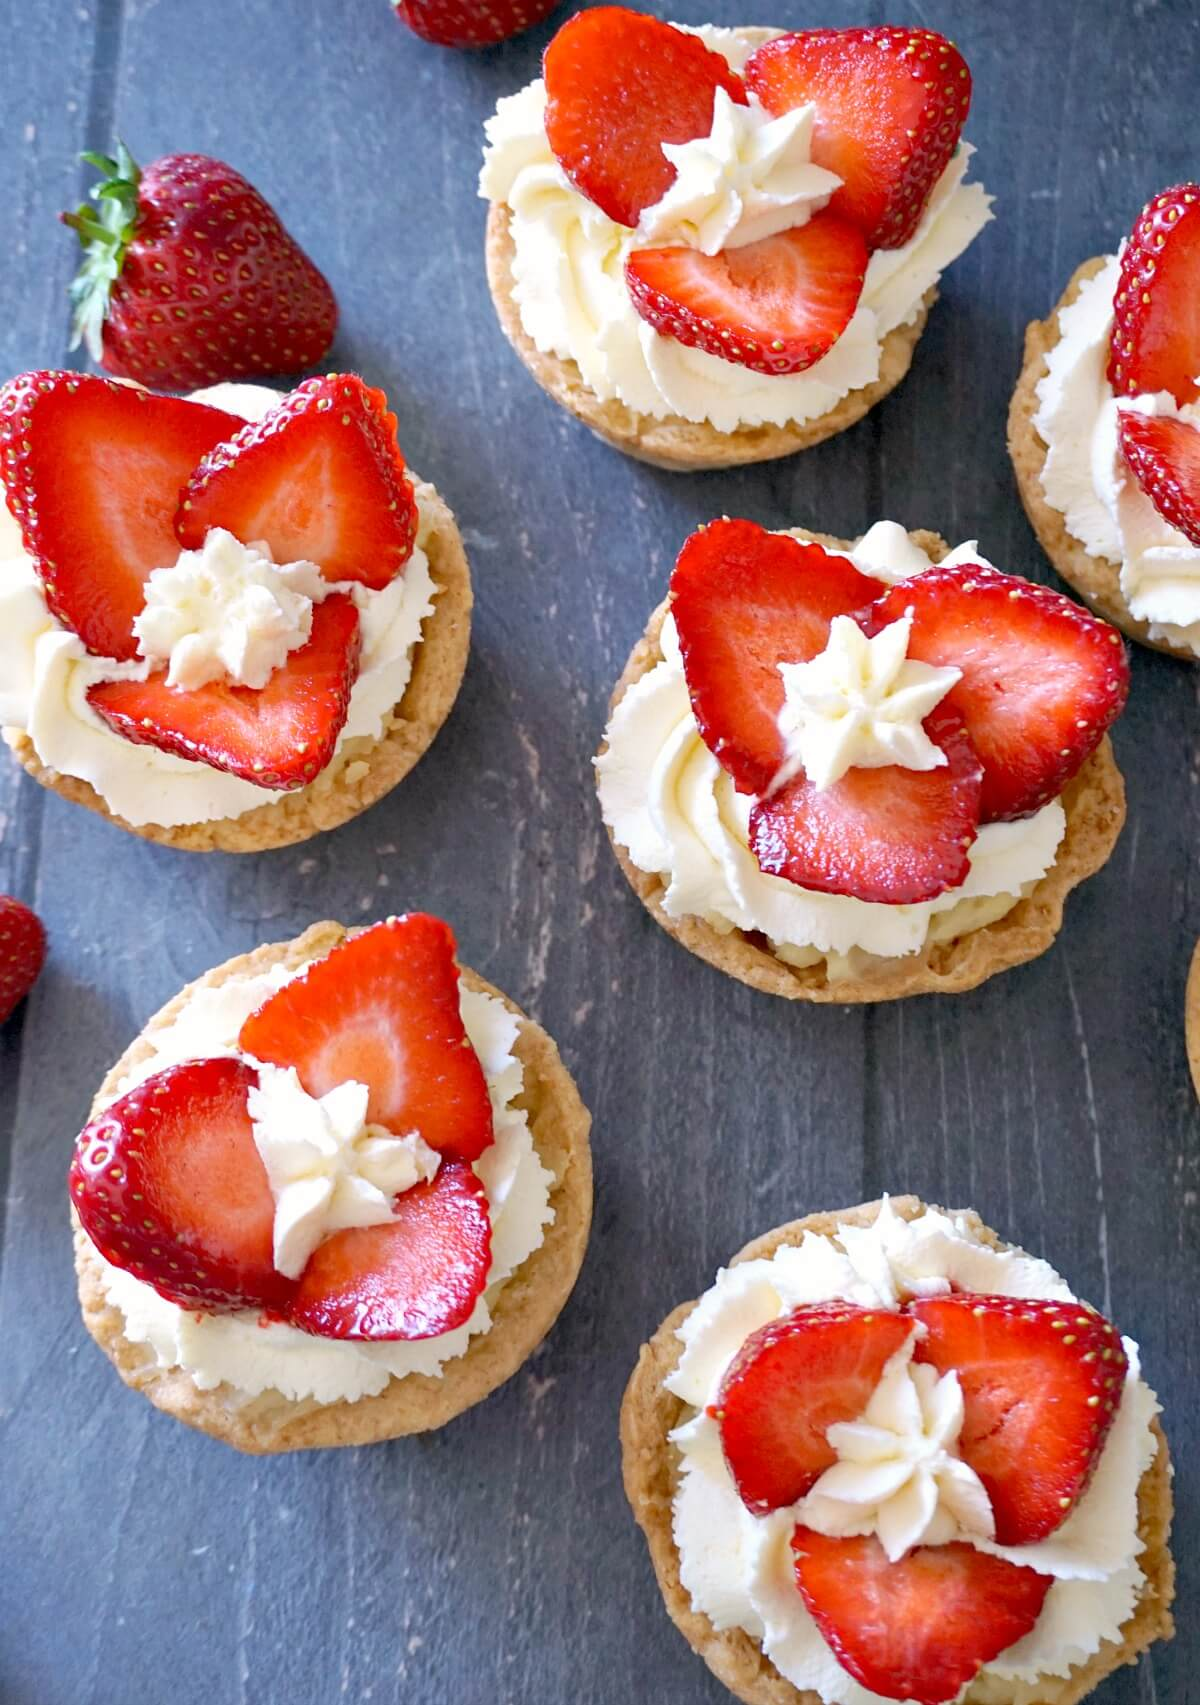 Overhead shoot of 6 strawberry and cream tartlets